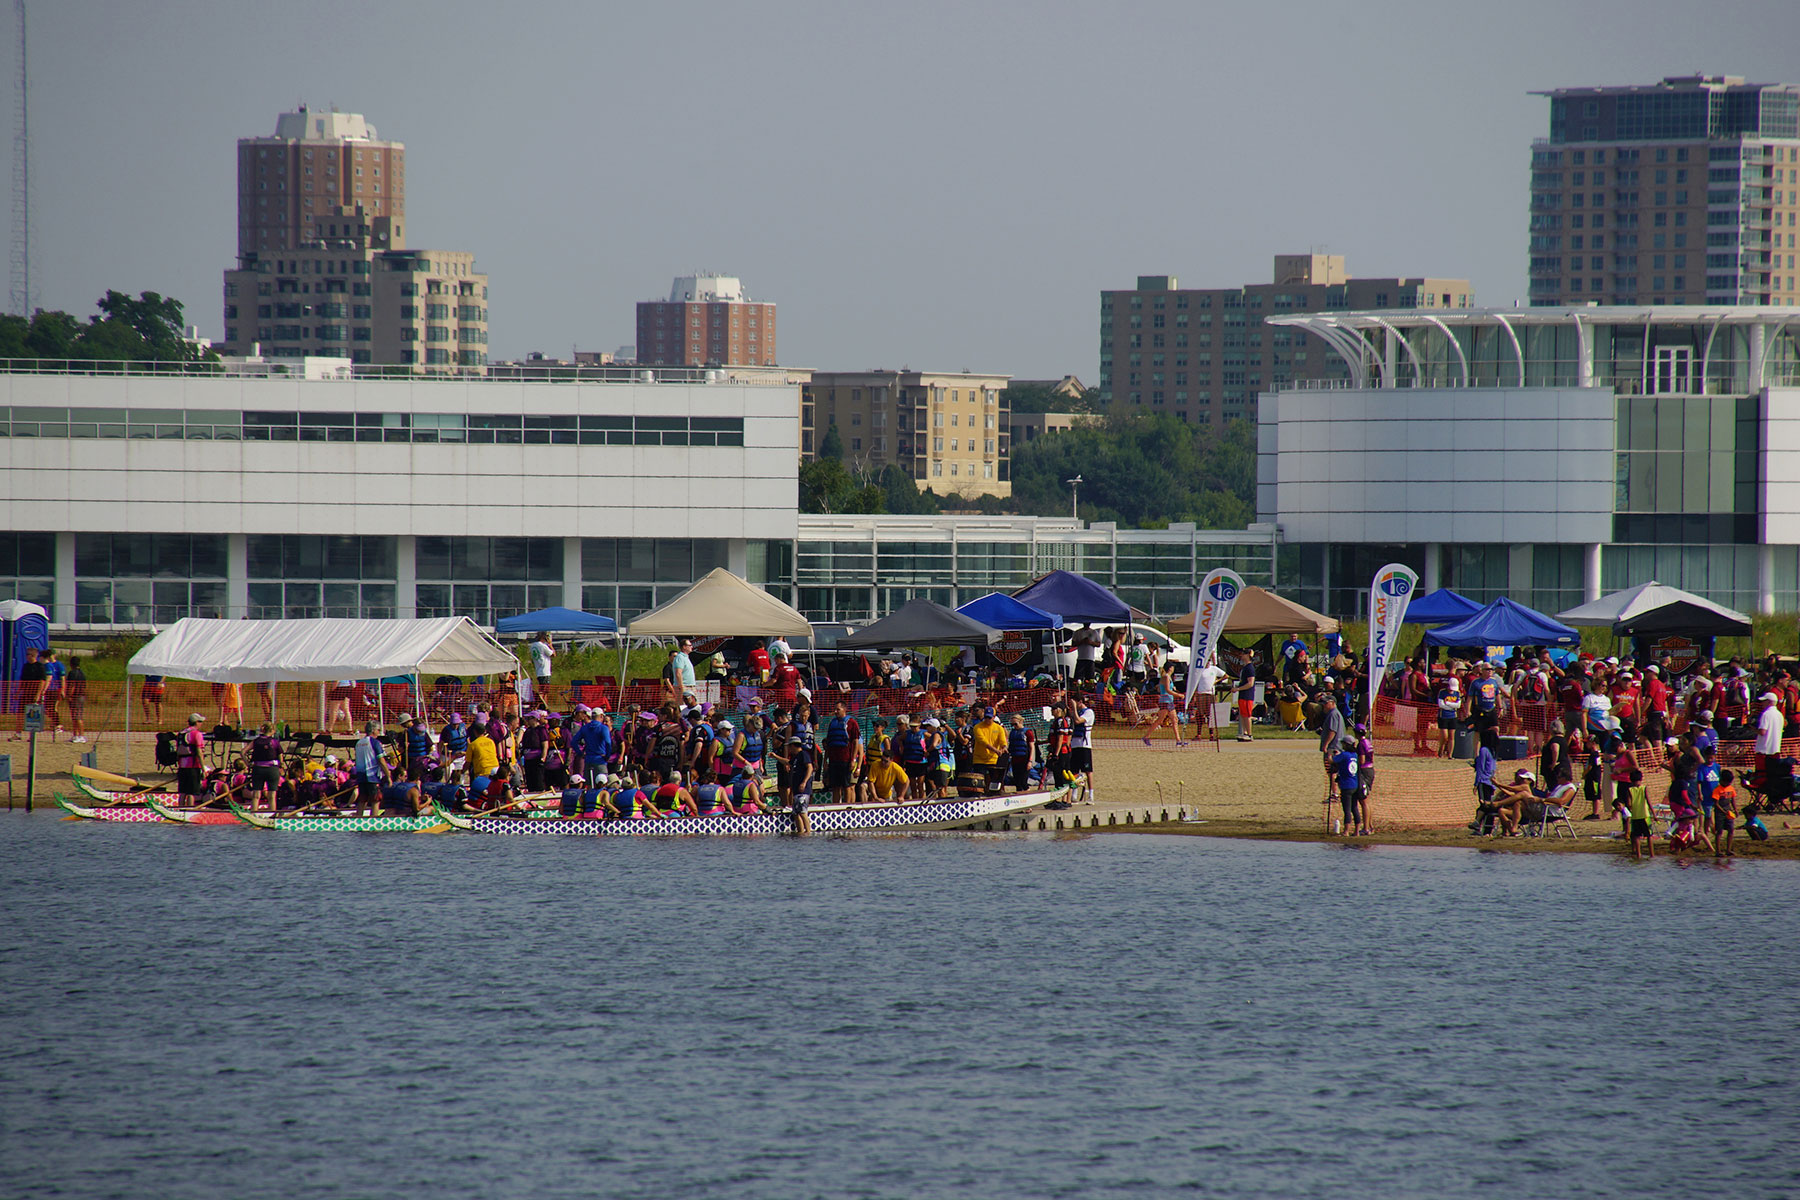 081118_dragonboat_134